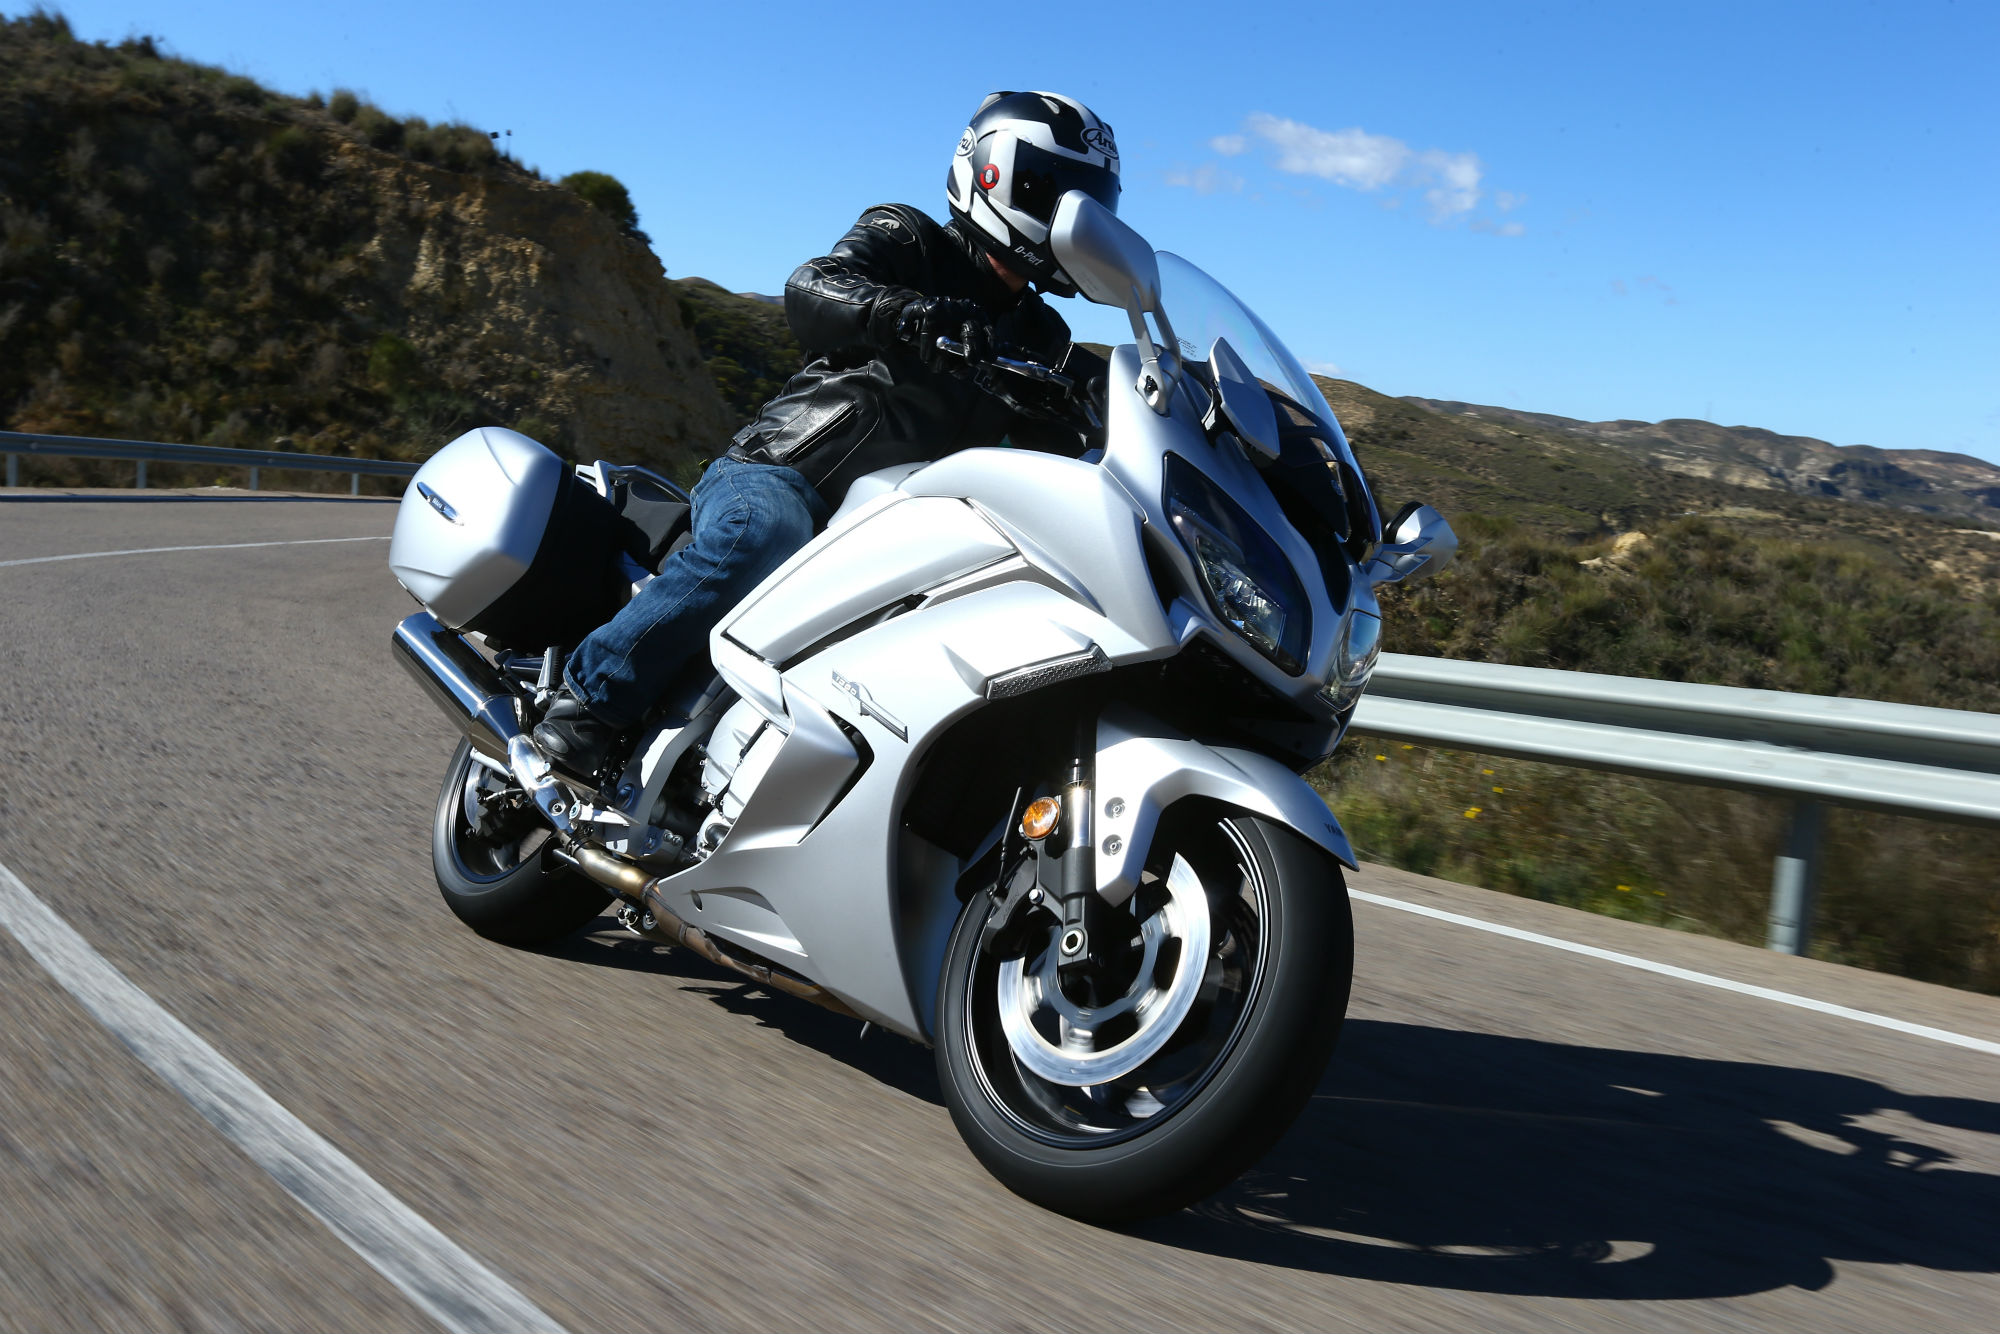 First ride: Yamaha FJR1300 review | Visordown